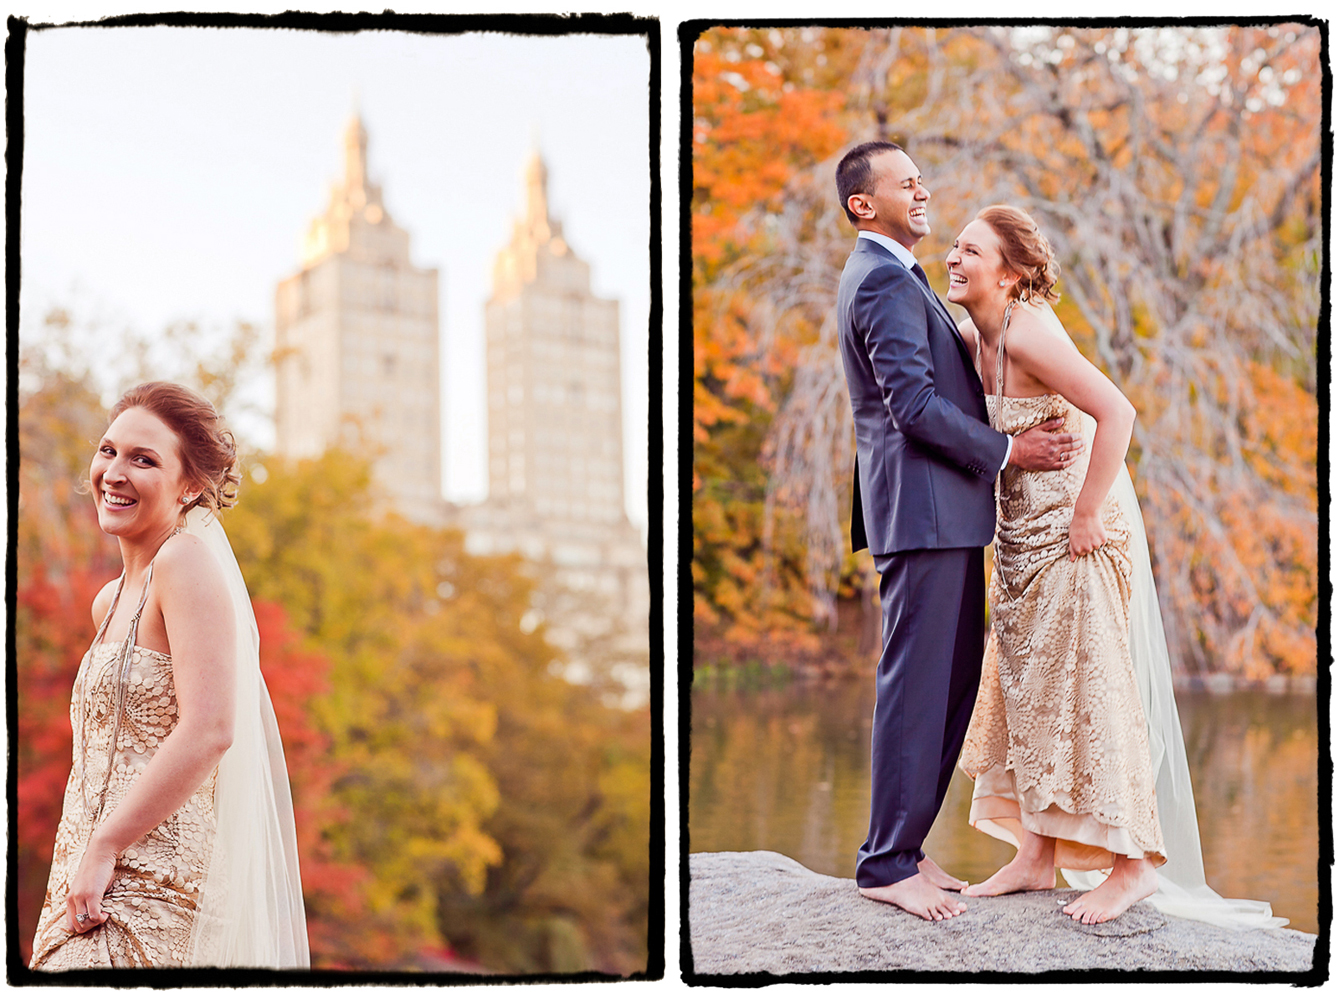 After a fall elopement in Central Park we took some time to walk around and make some beautiful photographs.  I loved how the colors of the fall foliage were complementing the warth of this bride's gown.